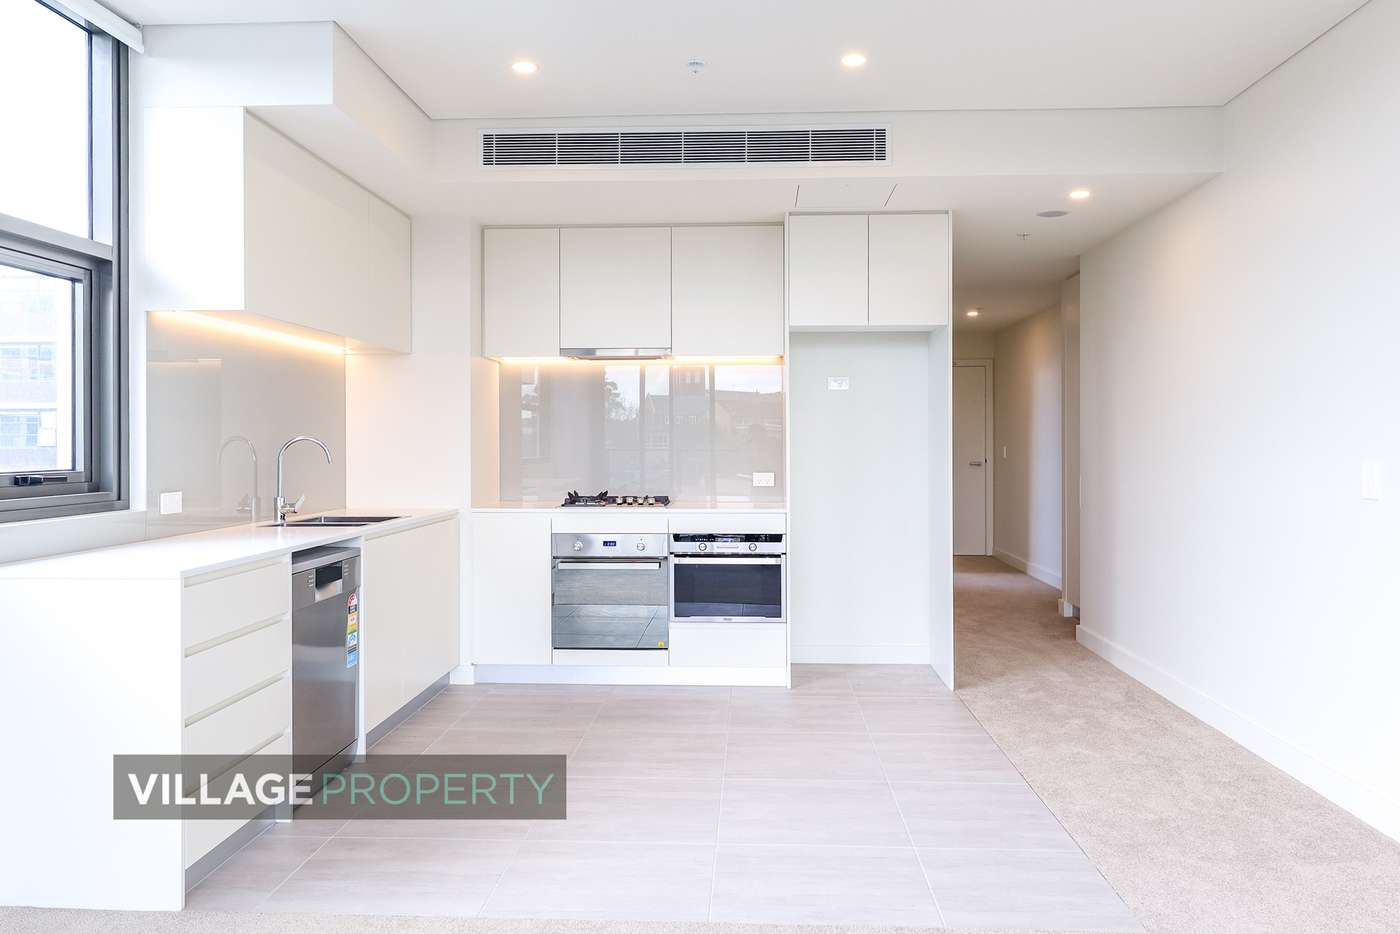 Sixth view of Homely apartment listing, 301/213 Princes Highway, Arncliffe NSW 2205